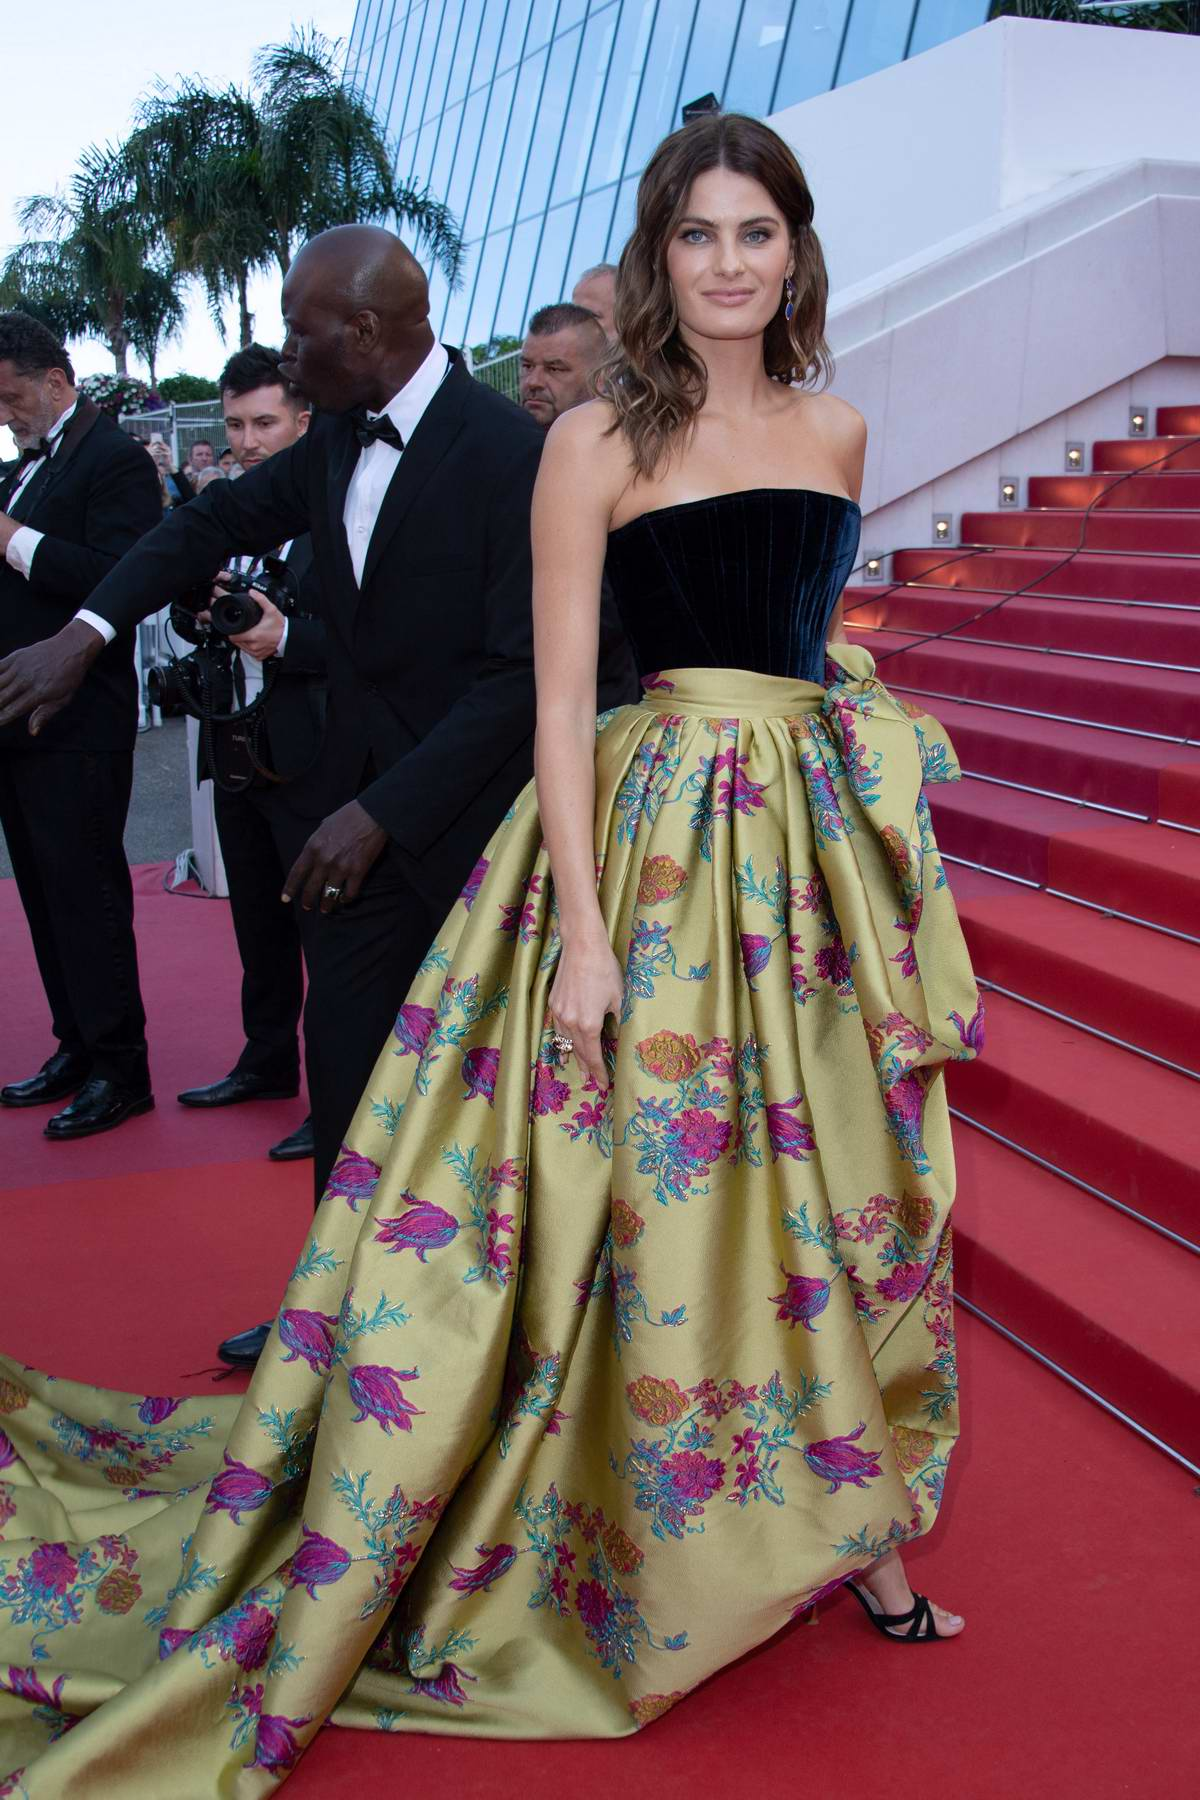 Isabeli Fontana attends the screening of 'Rocketman' during the 72nd annual Cannes Film Festival in Cannes, France